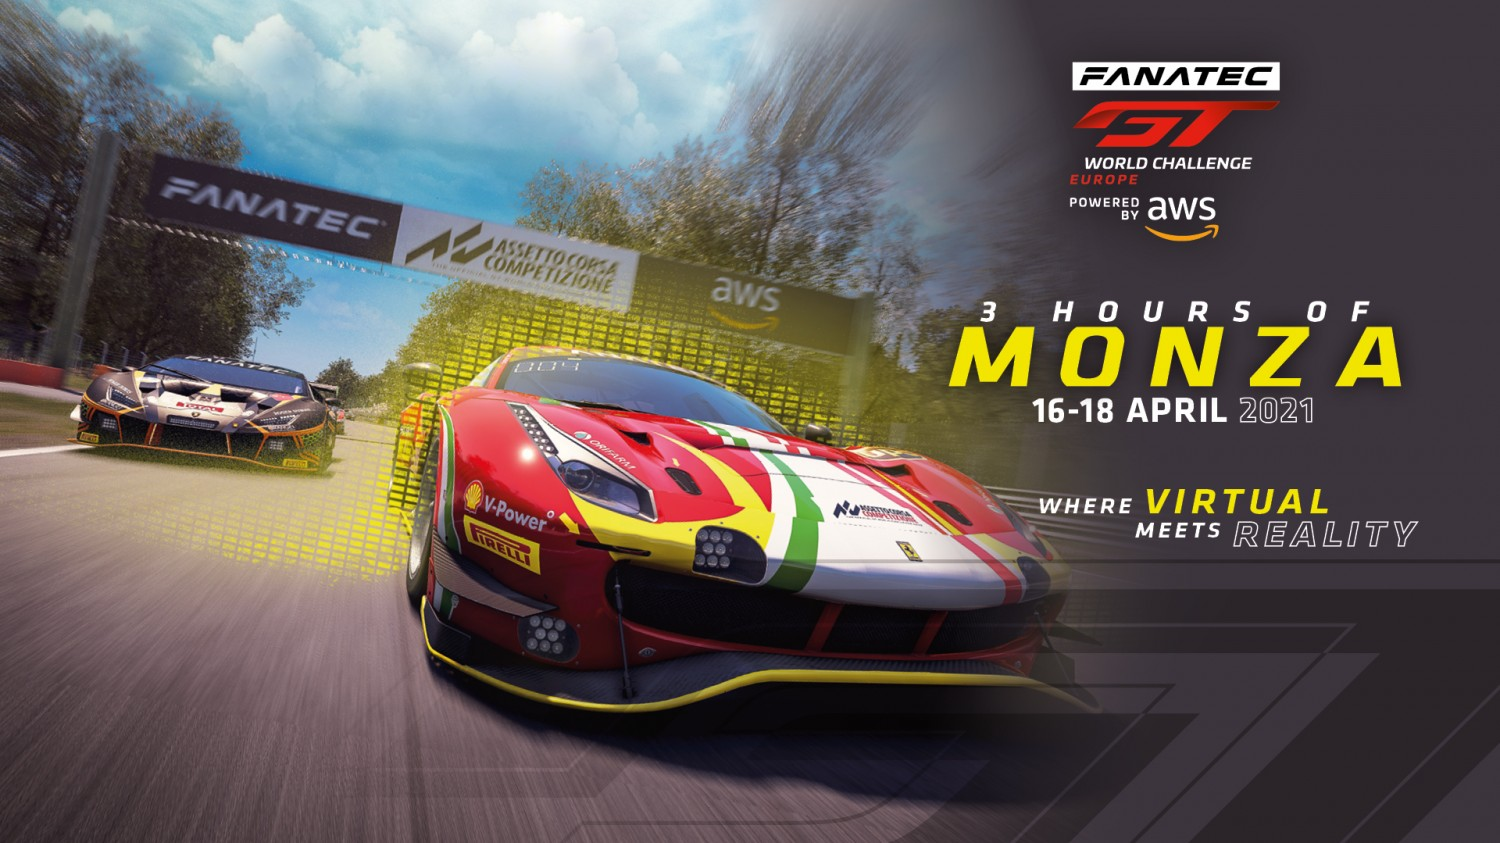 Fanatec GT World Challenge Europe Powered by AWS returns to Monza for 2021 season launch